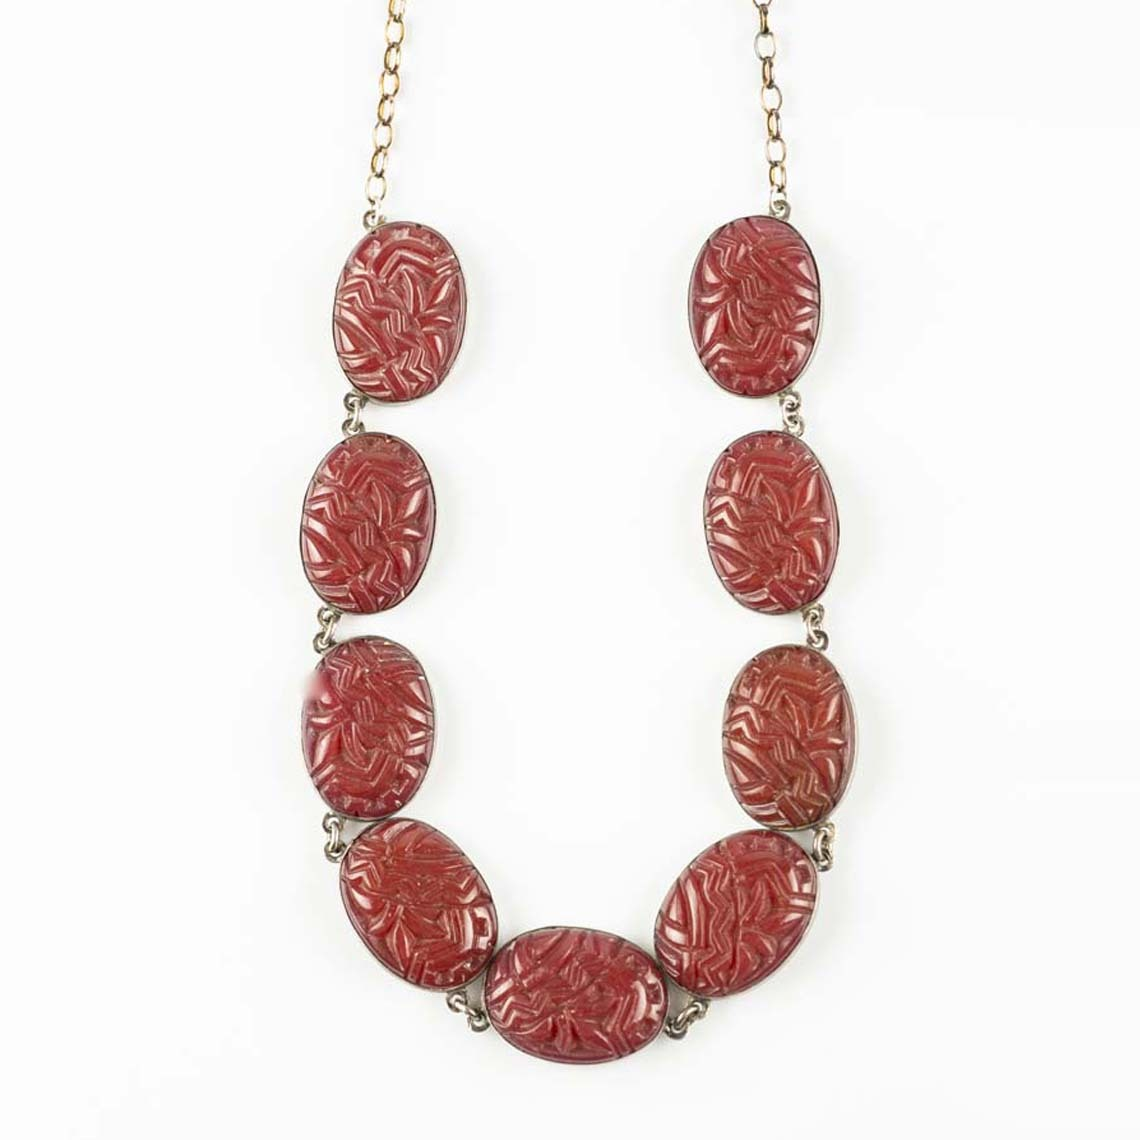 Vintage bakelite necklace